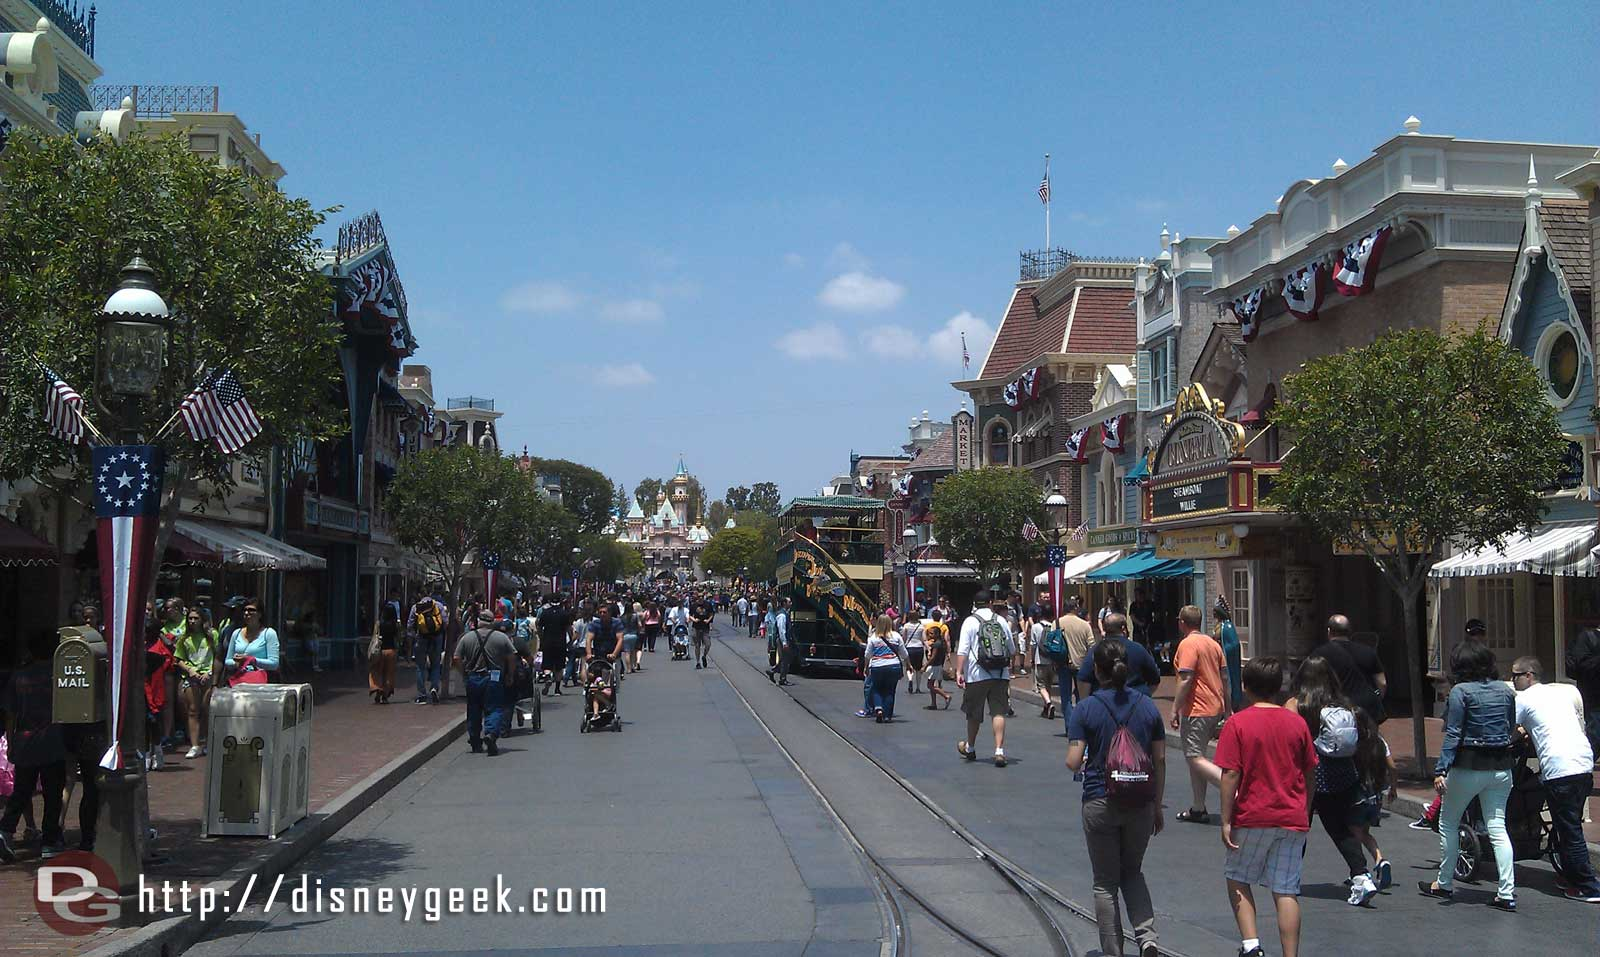 A look at Main Street